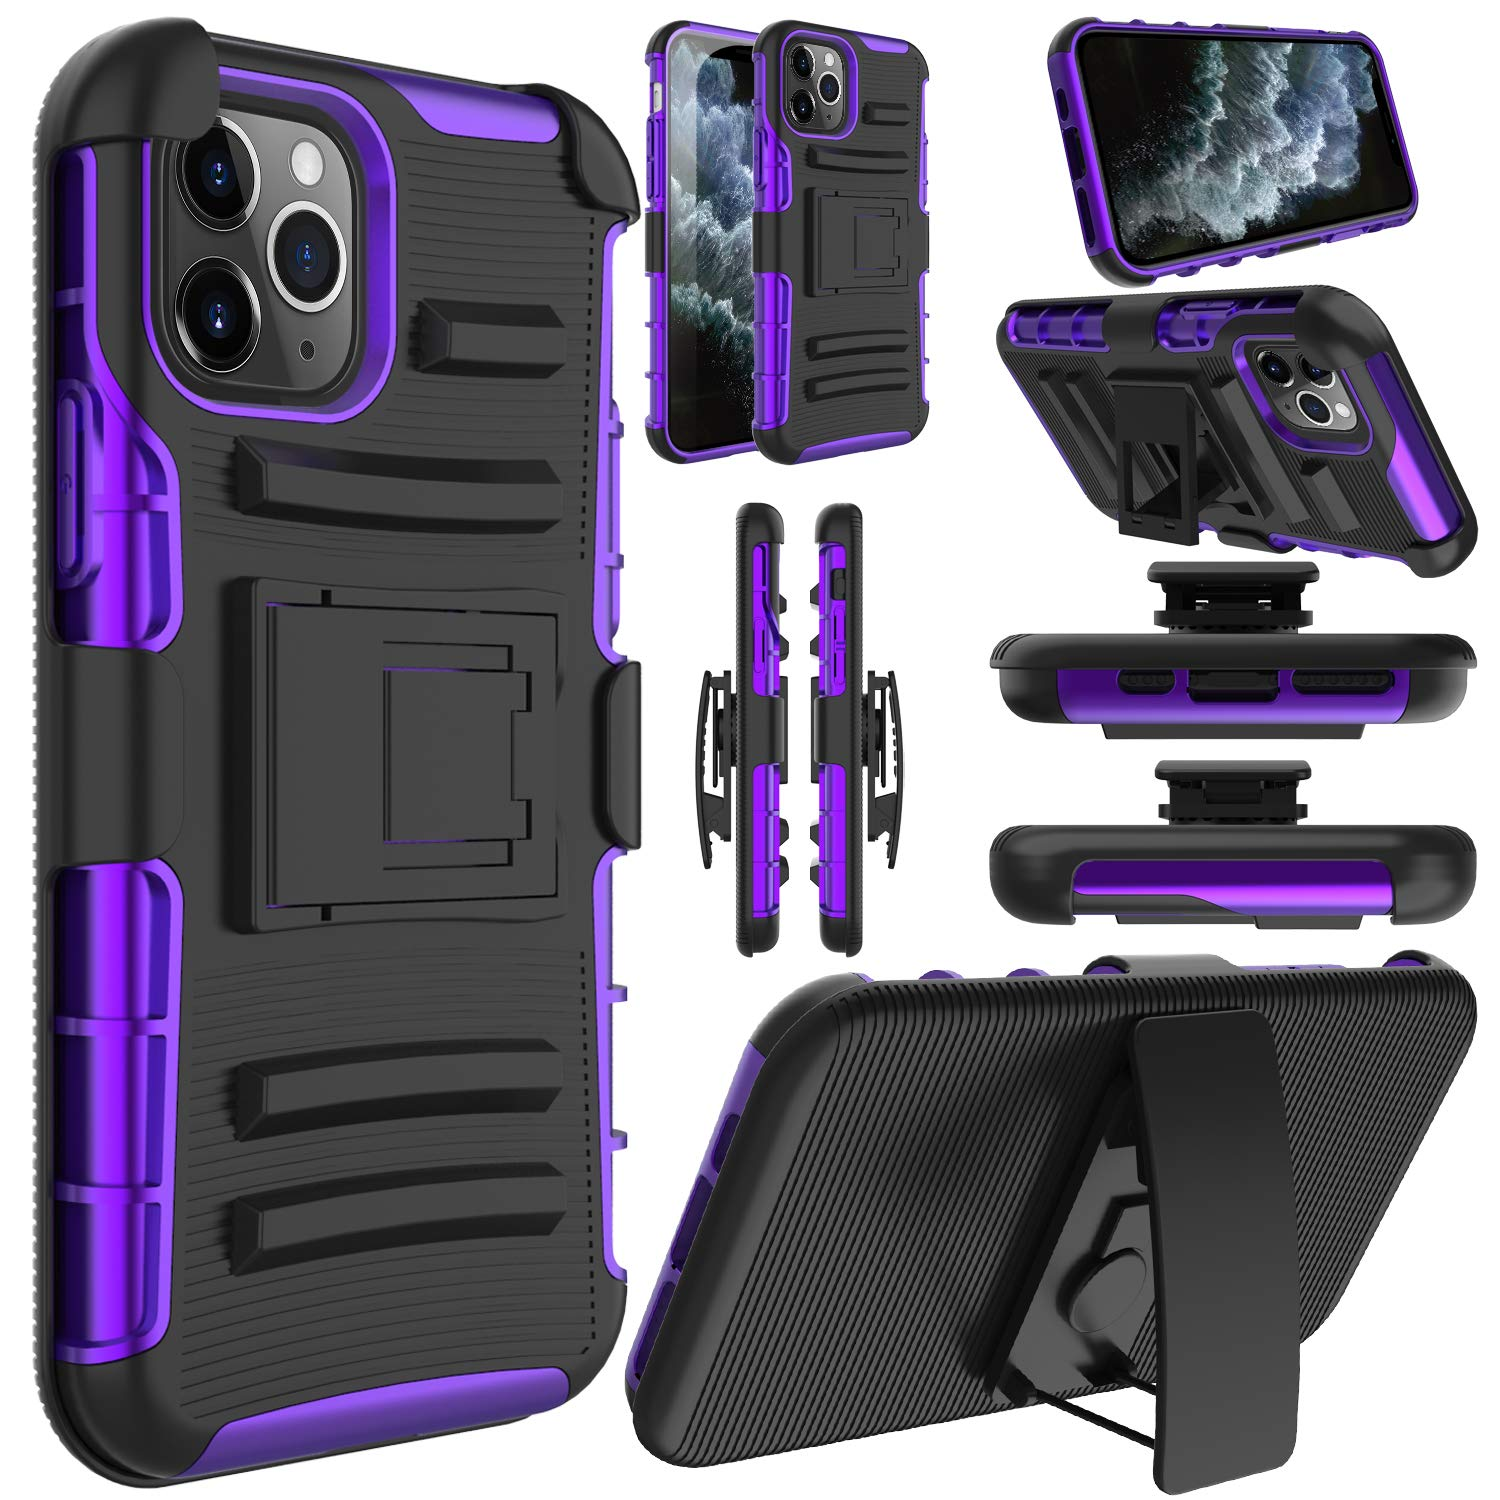 Elegant Choise Compatible iPhone 11 Pro 5.8 inch Case, Hybrid Shockproof Rugged Kickstand Holster Swivel Belt Clip Heavy Duty Full Body Rubber Bumper Armor Defender Protective Cover(Purple)